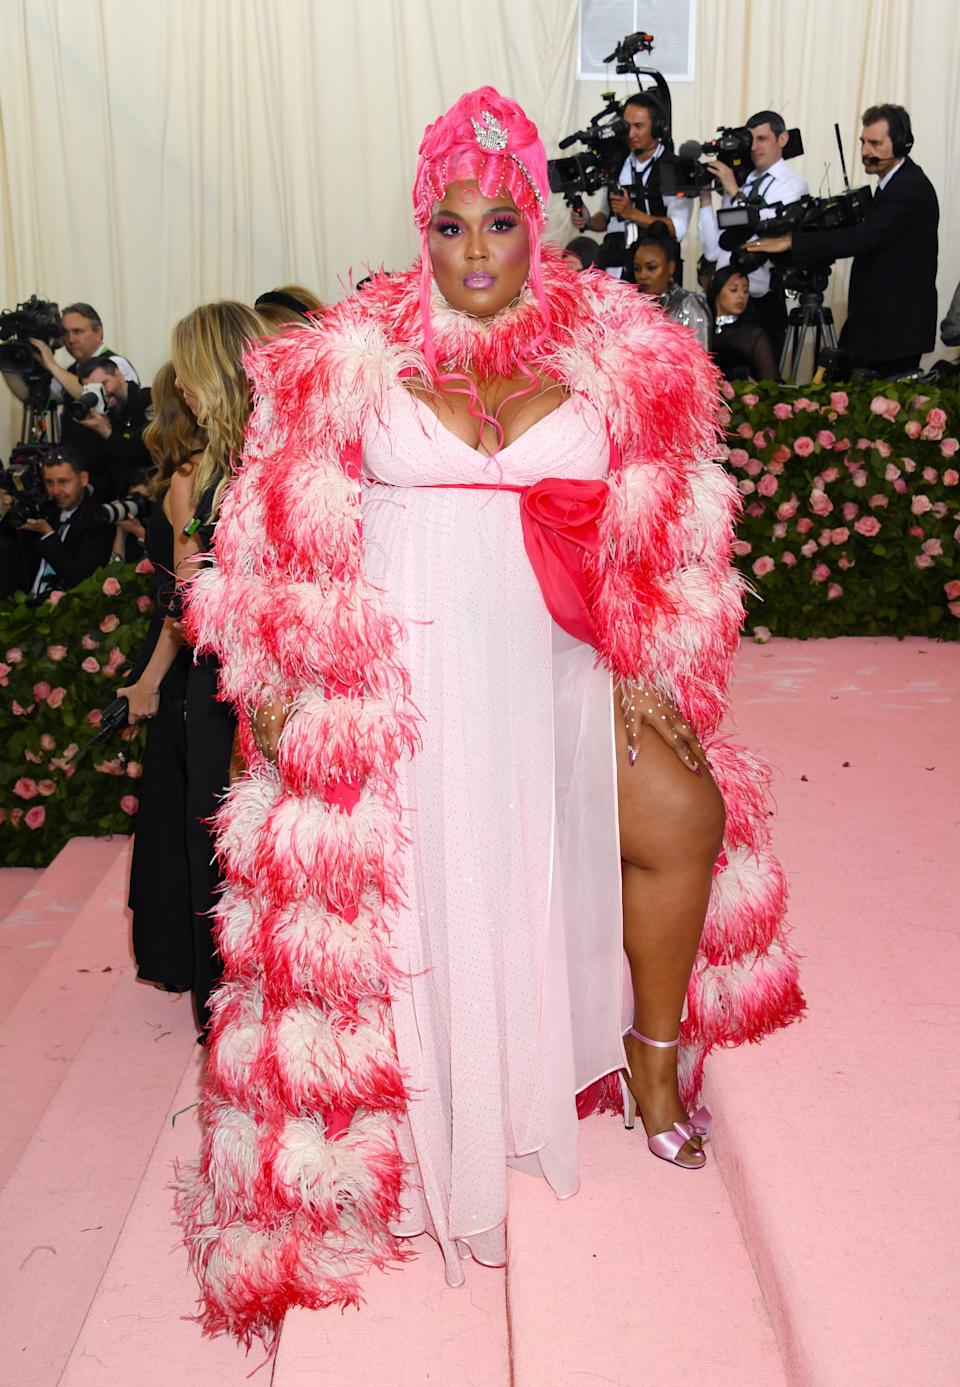 """Lizzo went all out for her first Met Gala. Keeping to the theme of """"Camp,"""" she dyed her pink and wore a custom Marc Jacobs gown and the most flamboyant feather boa we have ever seen."""